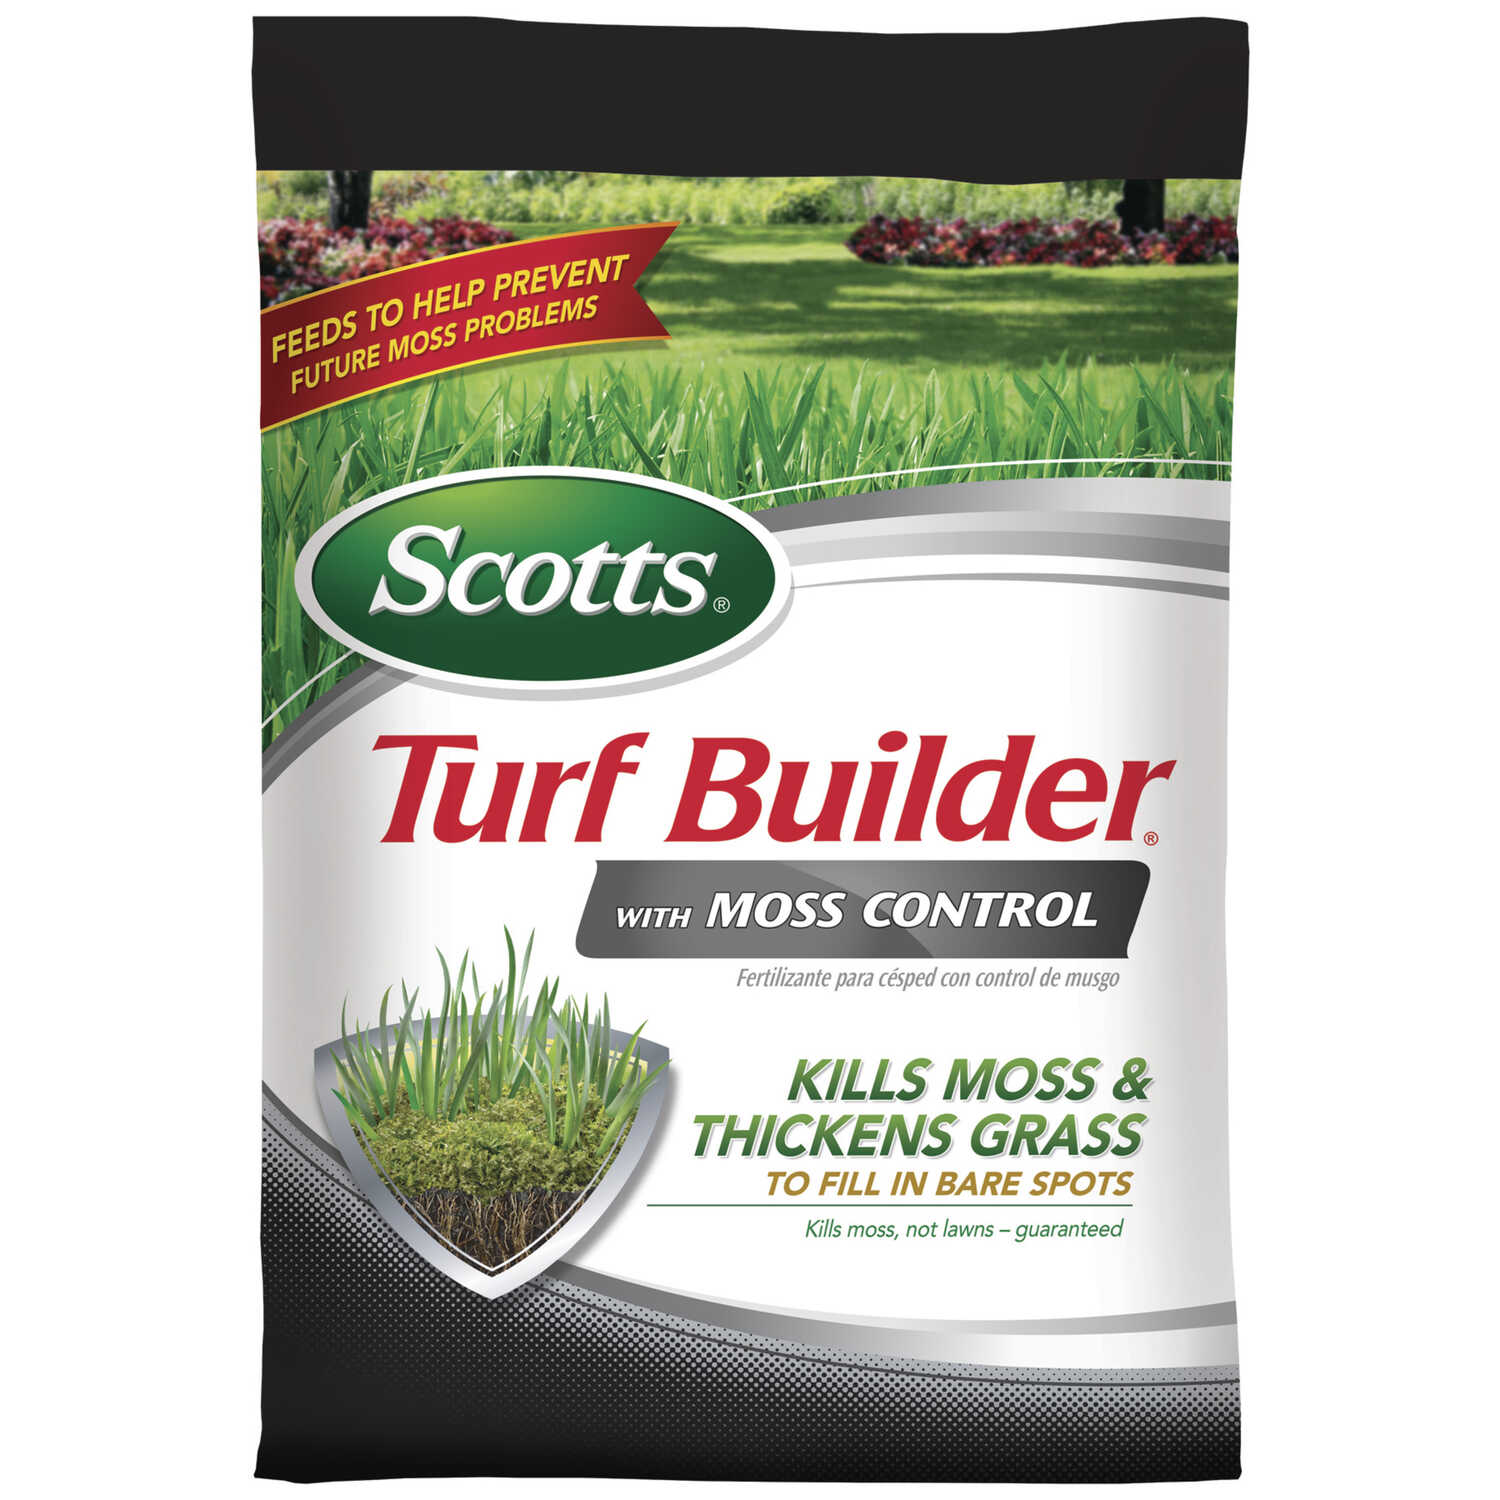 Scotts  Turf Builder  23-0-3  Lawn Fertilizer With Moss Control  For All Grass Types 52.06 lb. 10000